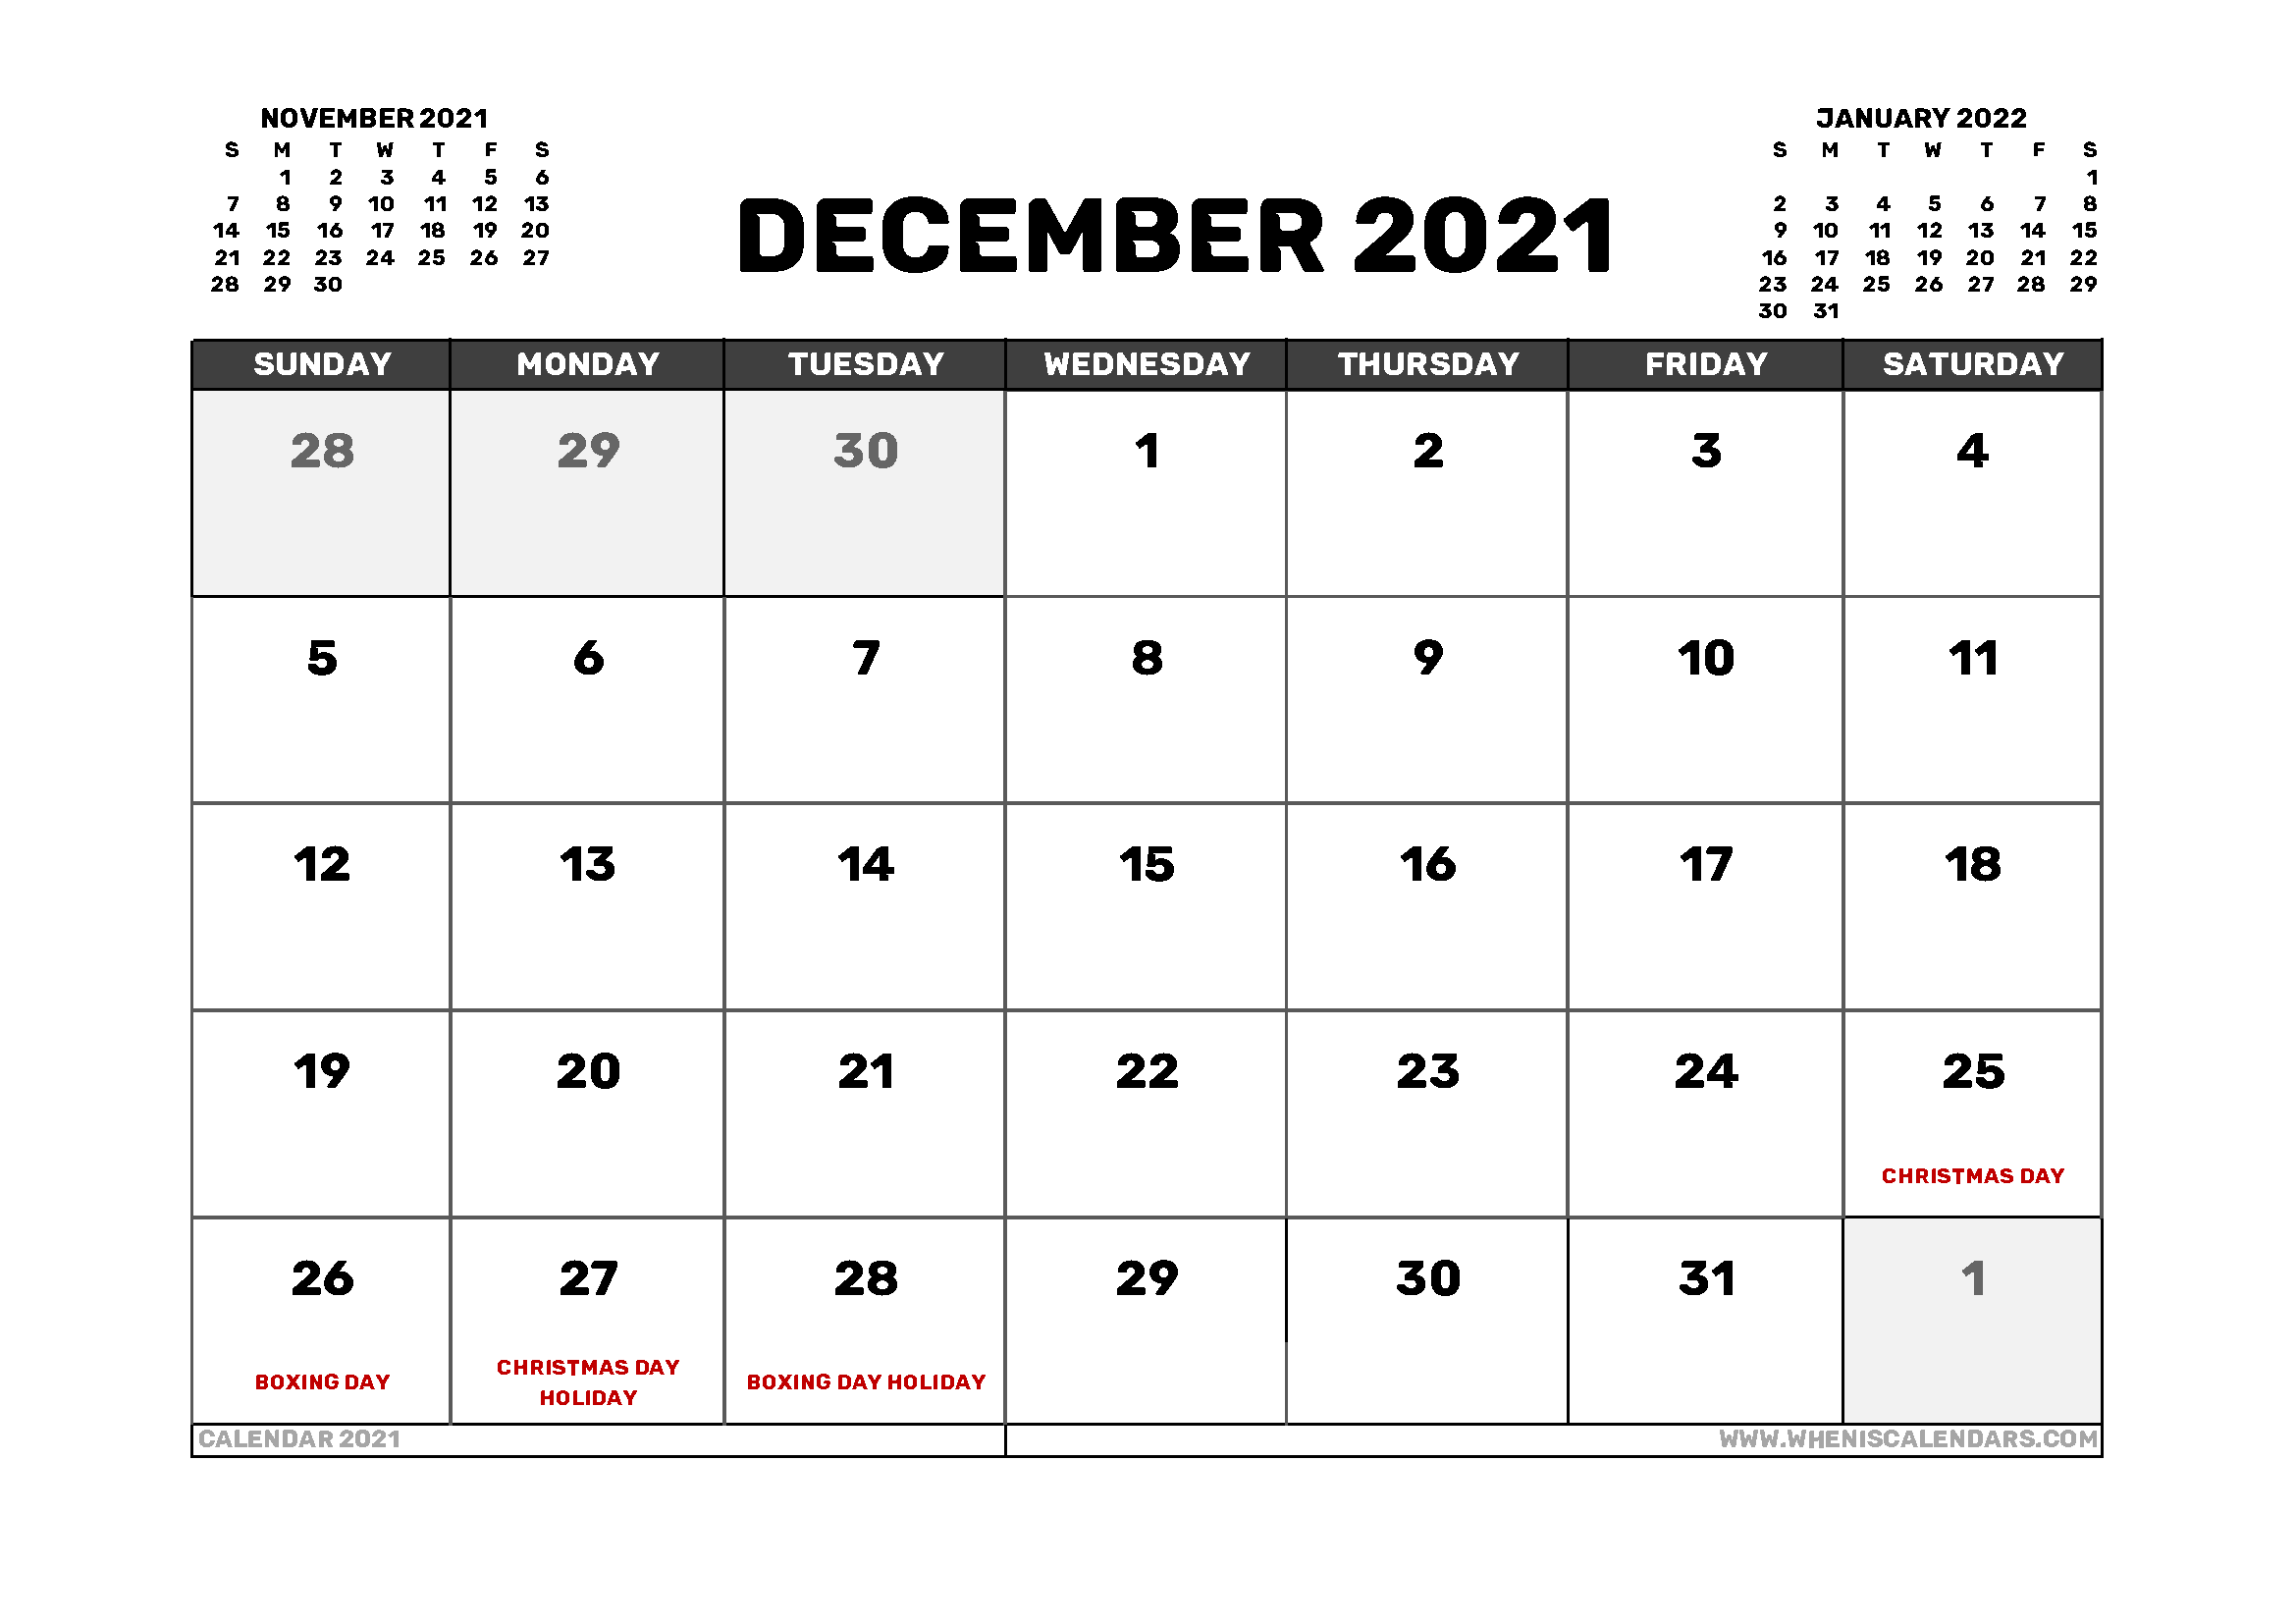 December 2021 Calendar Australia with Holidays